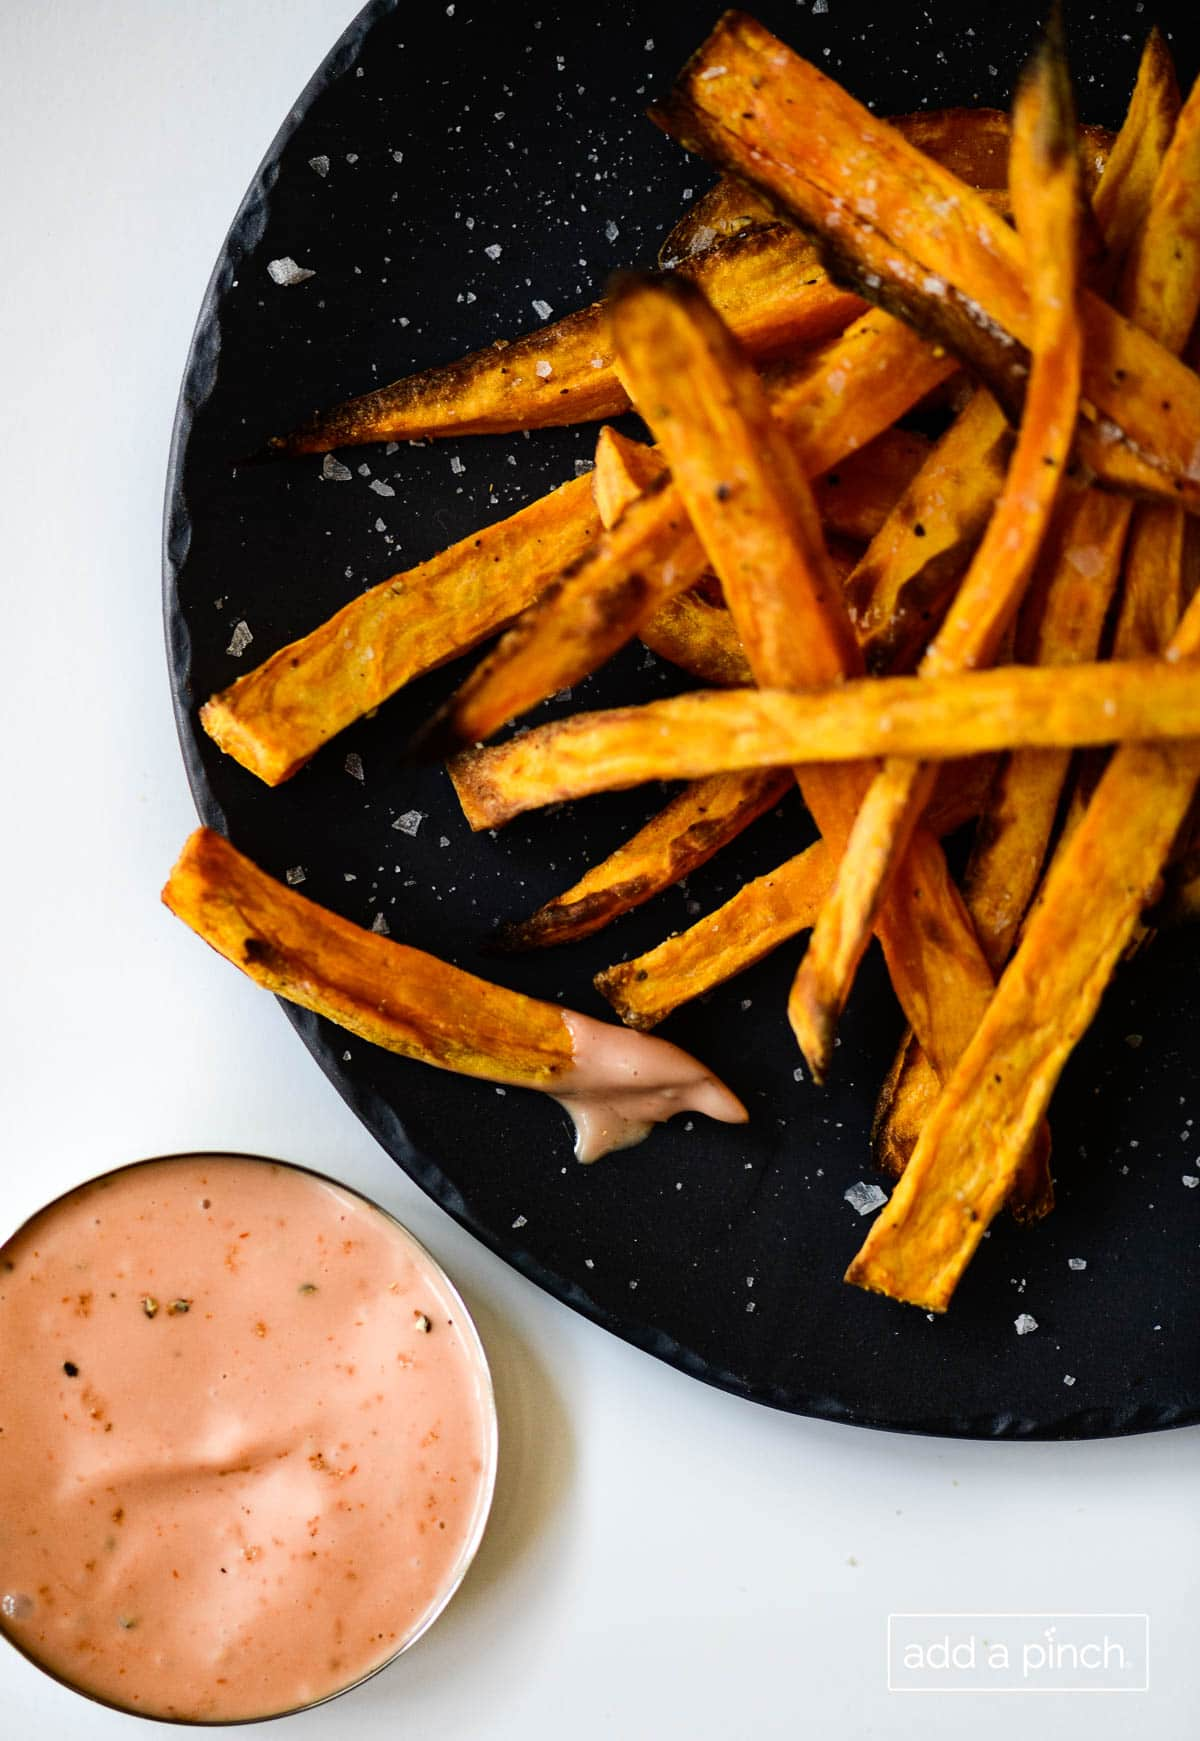 Closeup photograph of sweet potato fries on a black plate served with comeback sauce.